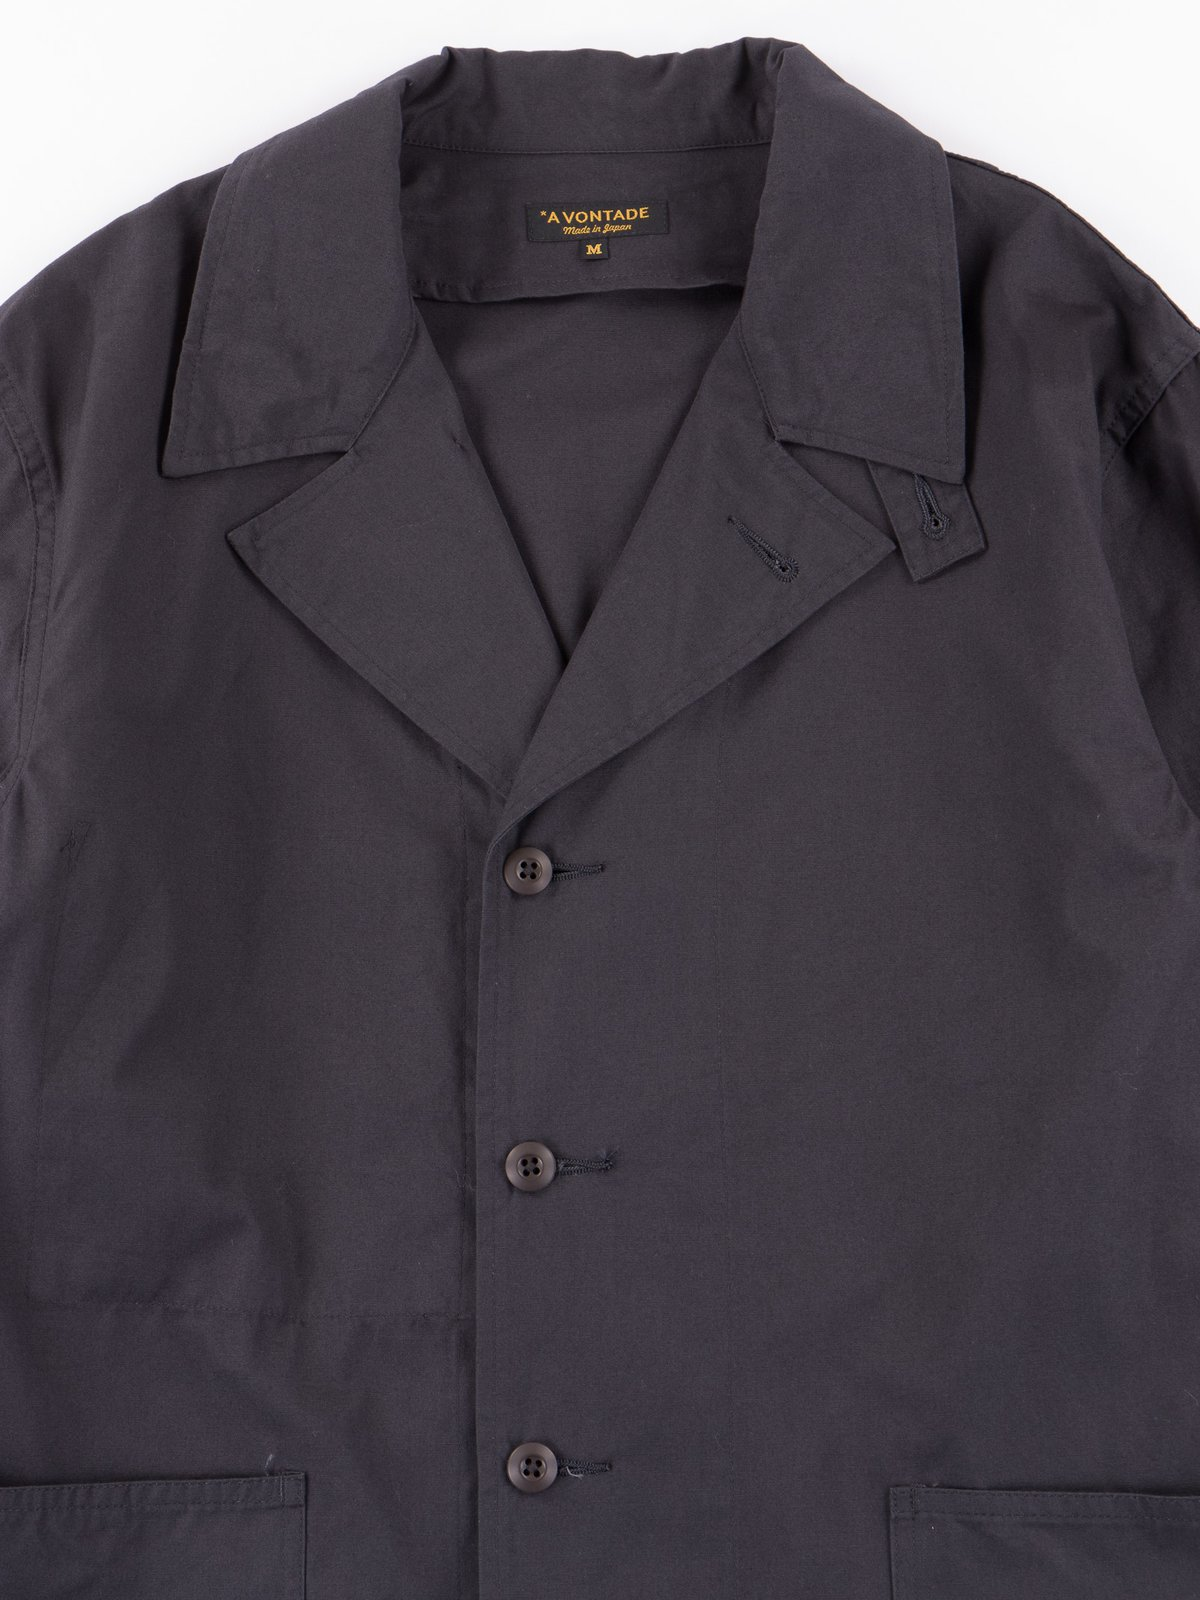 Fade Black Utility Coverall Jacket - Image 2